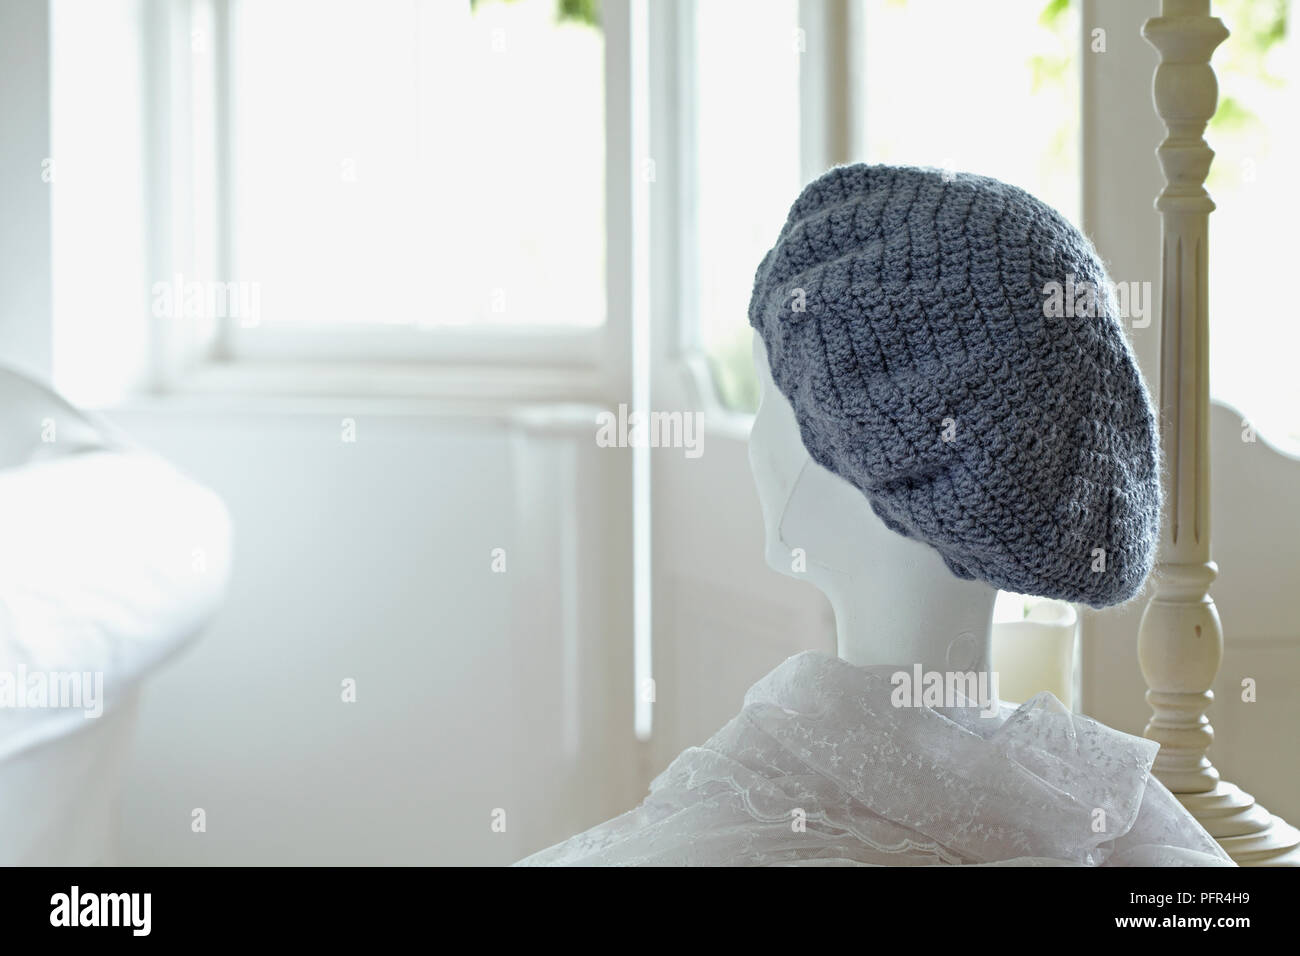 825b76f0109 Crocheted slouchy hat on dressmaker s mannequin Stock Photo ...